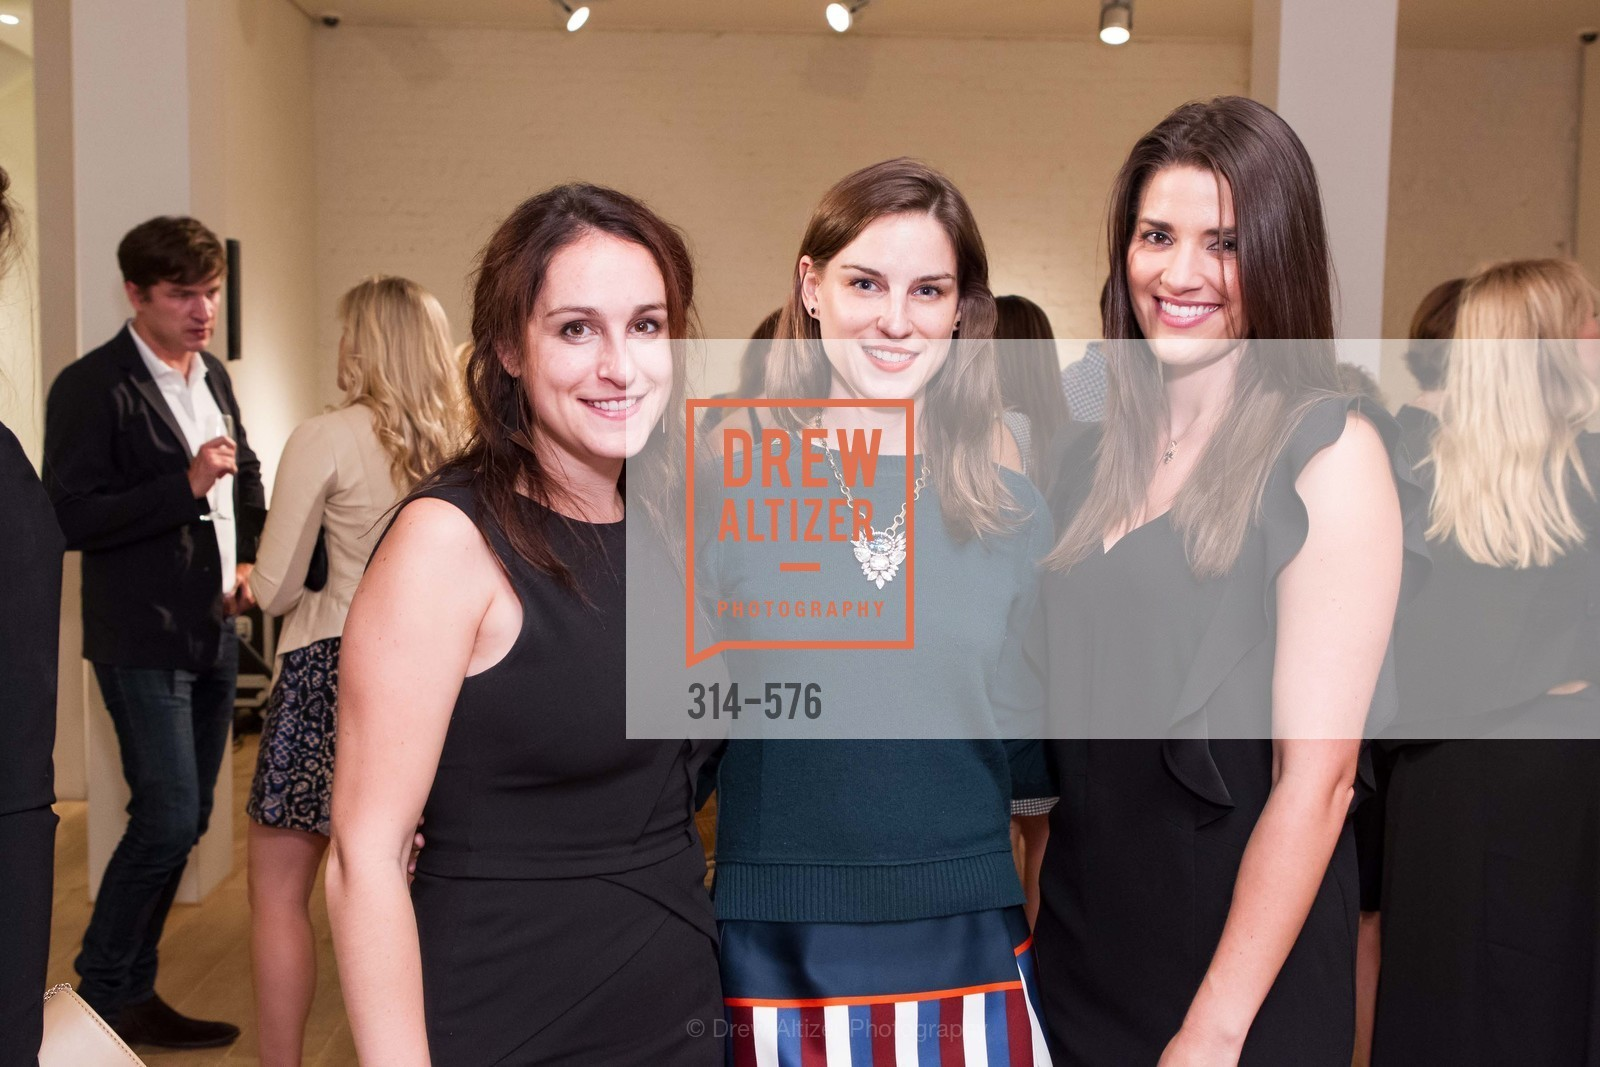 Kate Botler, Kathryn Duryea, Meredith Kendall, SF FALL ANTIQUES SHOW Designer's Circle Cocktail Party at HEWN, US, September 23rd, 2014,Drew Altizer, Drew Altizer Photography, full-service agency, private events, San Francisco photographer, photographer california